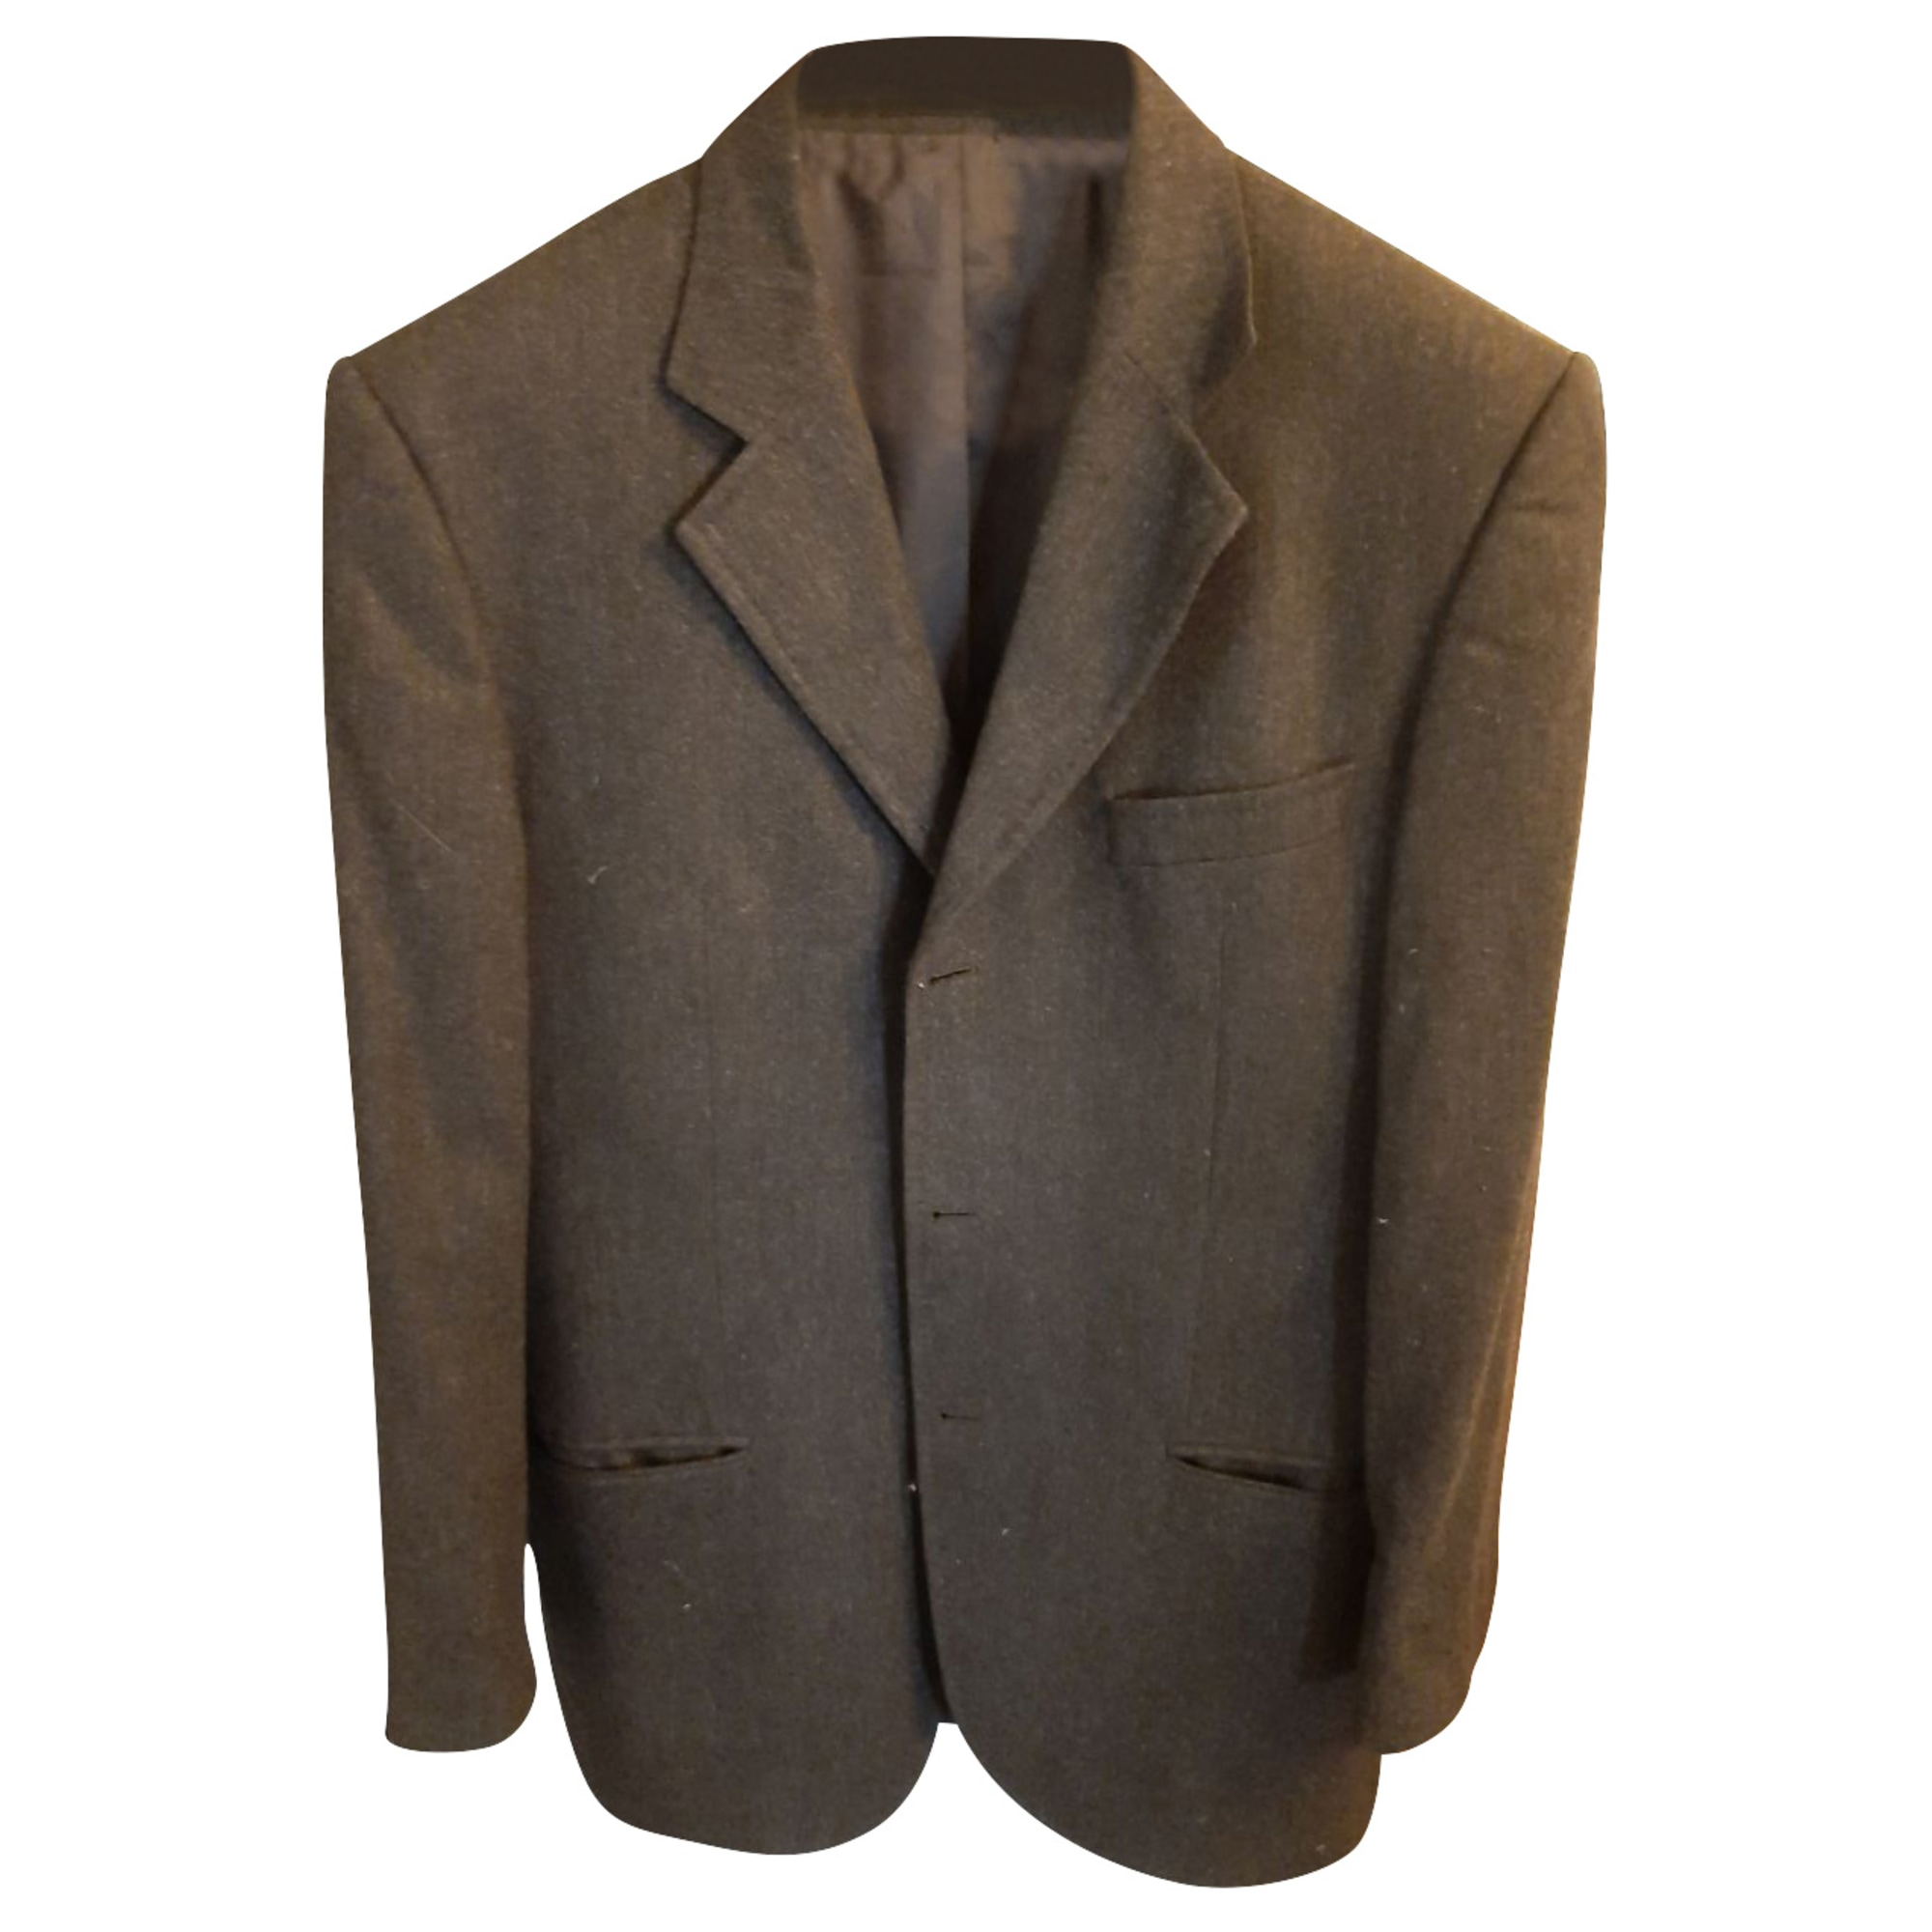 Veste de costume HUGO BOSS Gris, anthracite